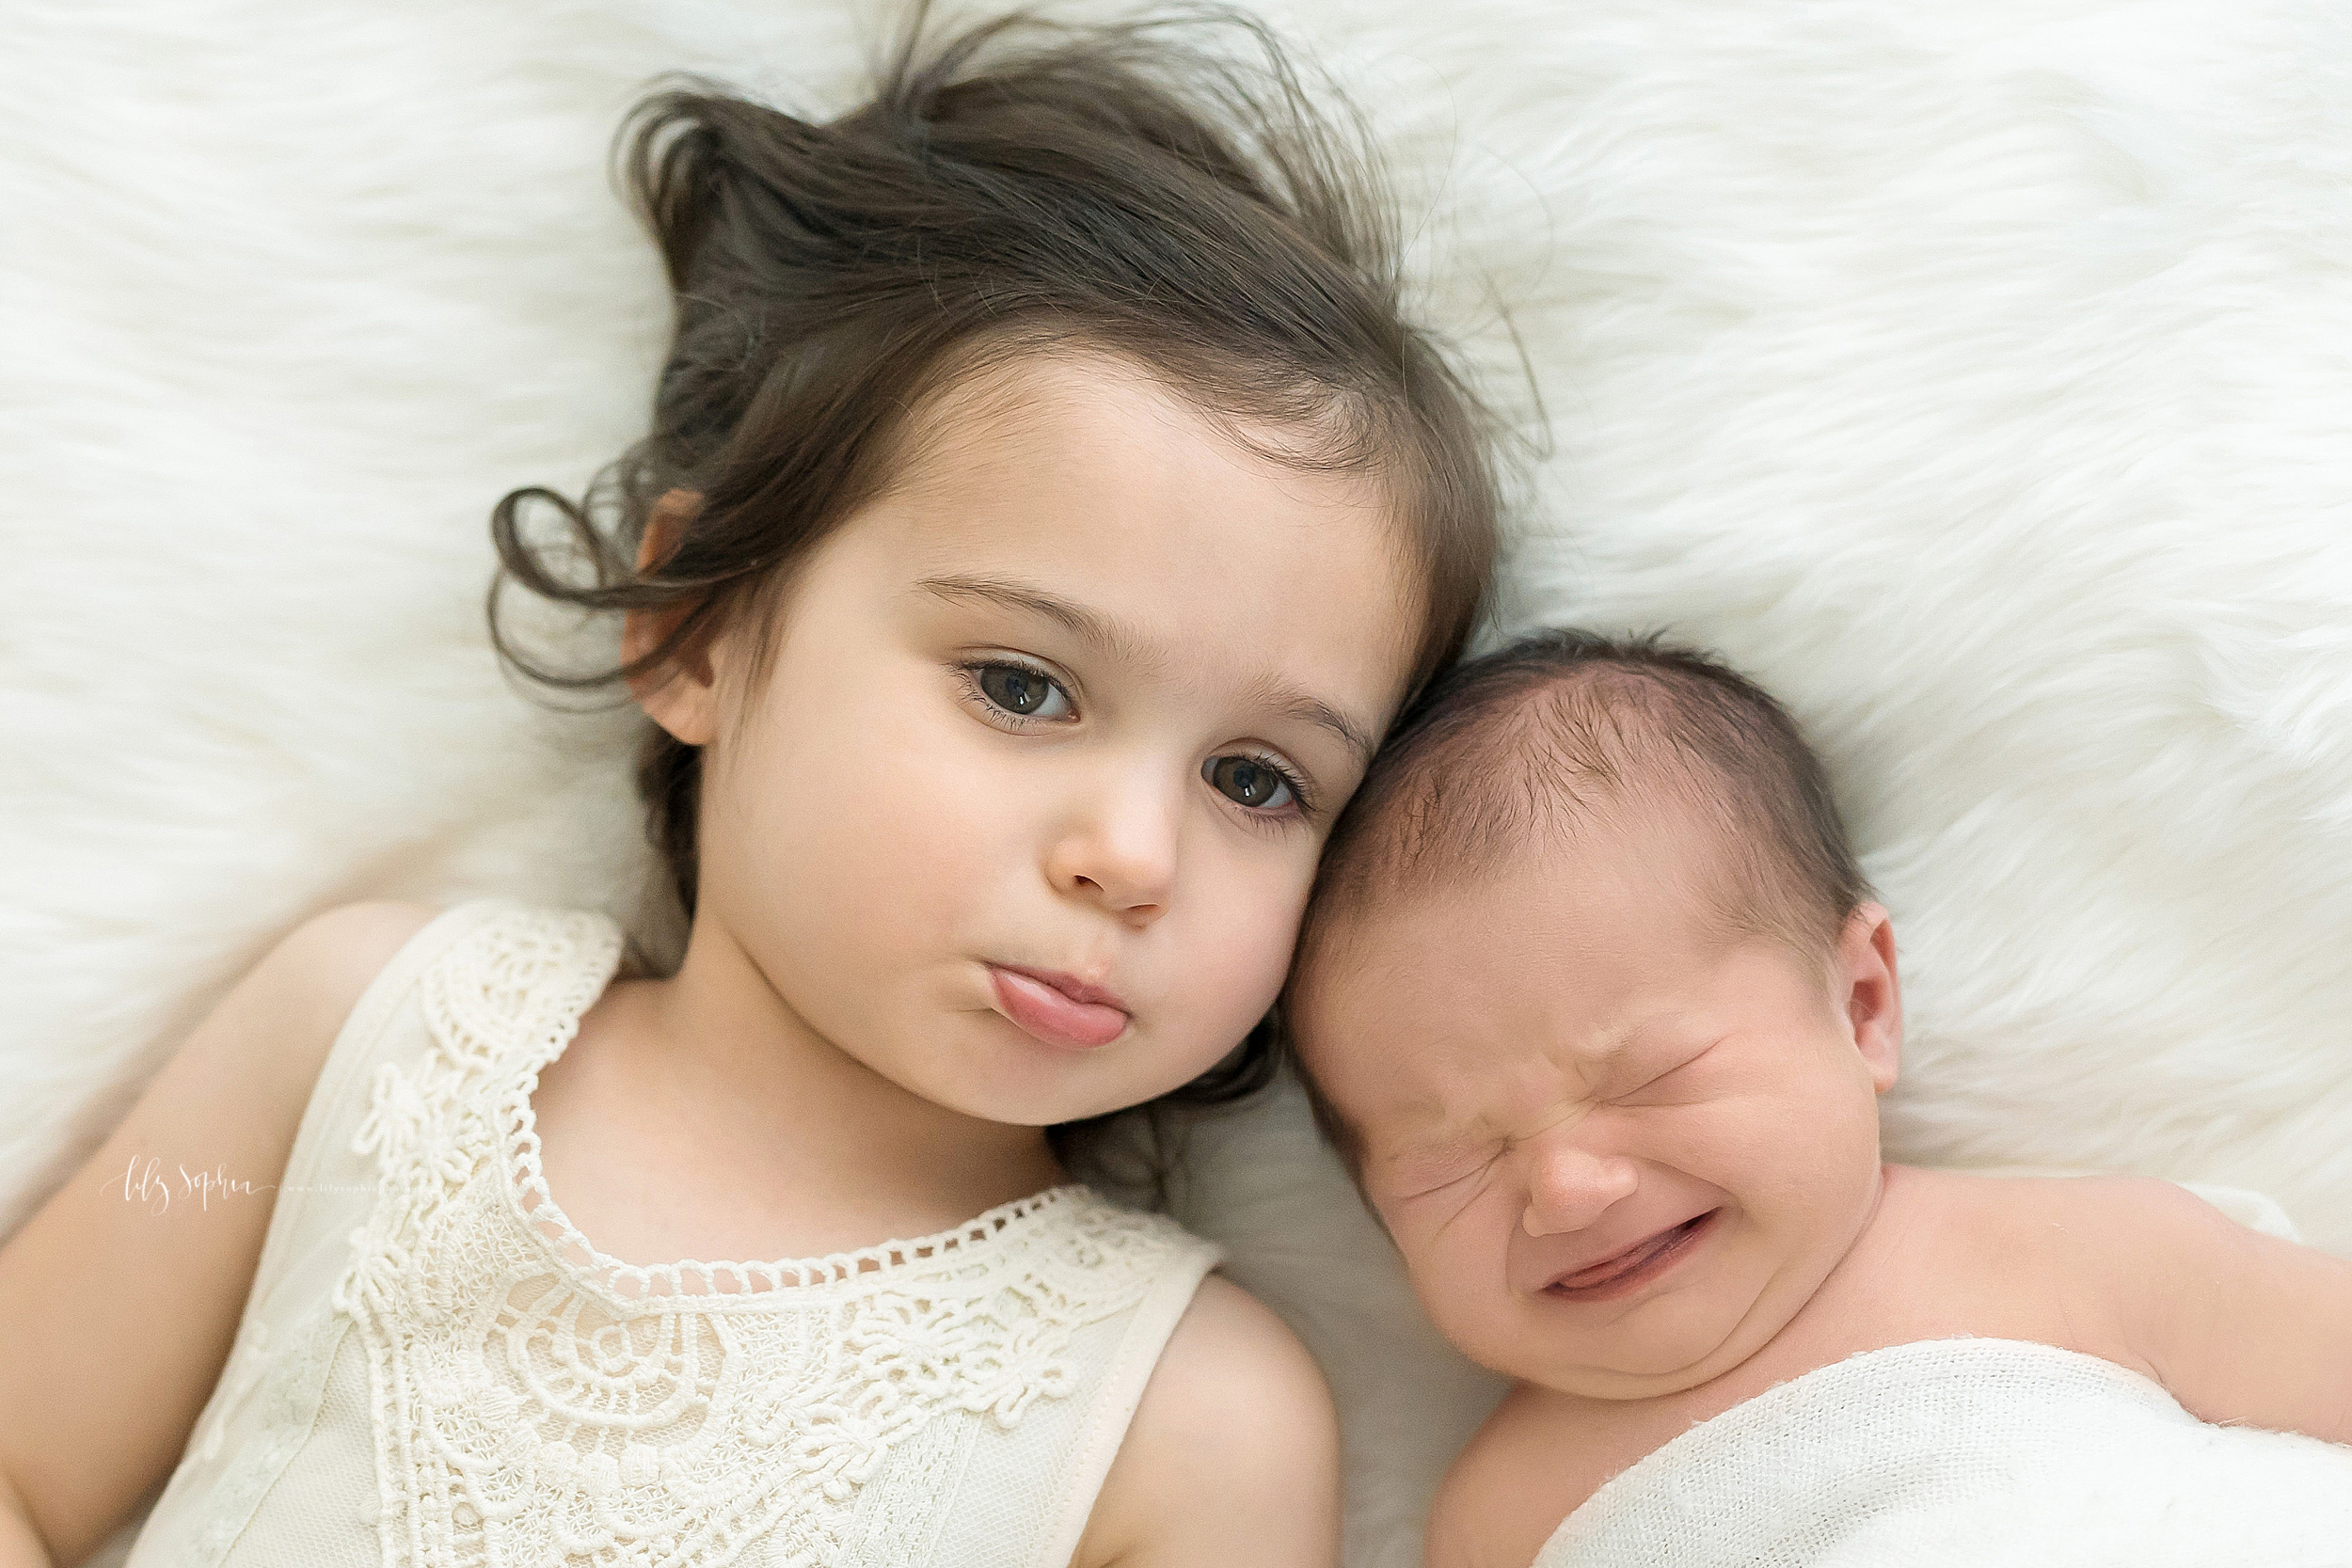 Siblings are lying next to each other on a soft white blanket.  The infant boy with brown hair is crying.  The toddler girl wearing a sleeveless white lace dress is pouting because she is sad that her brother is not happy.